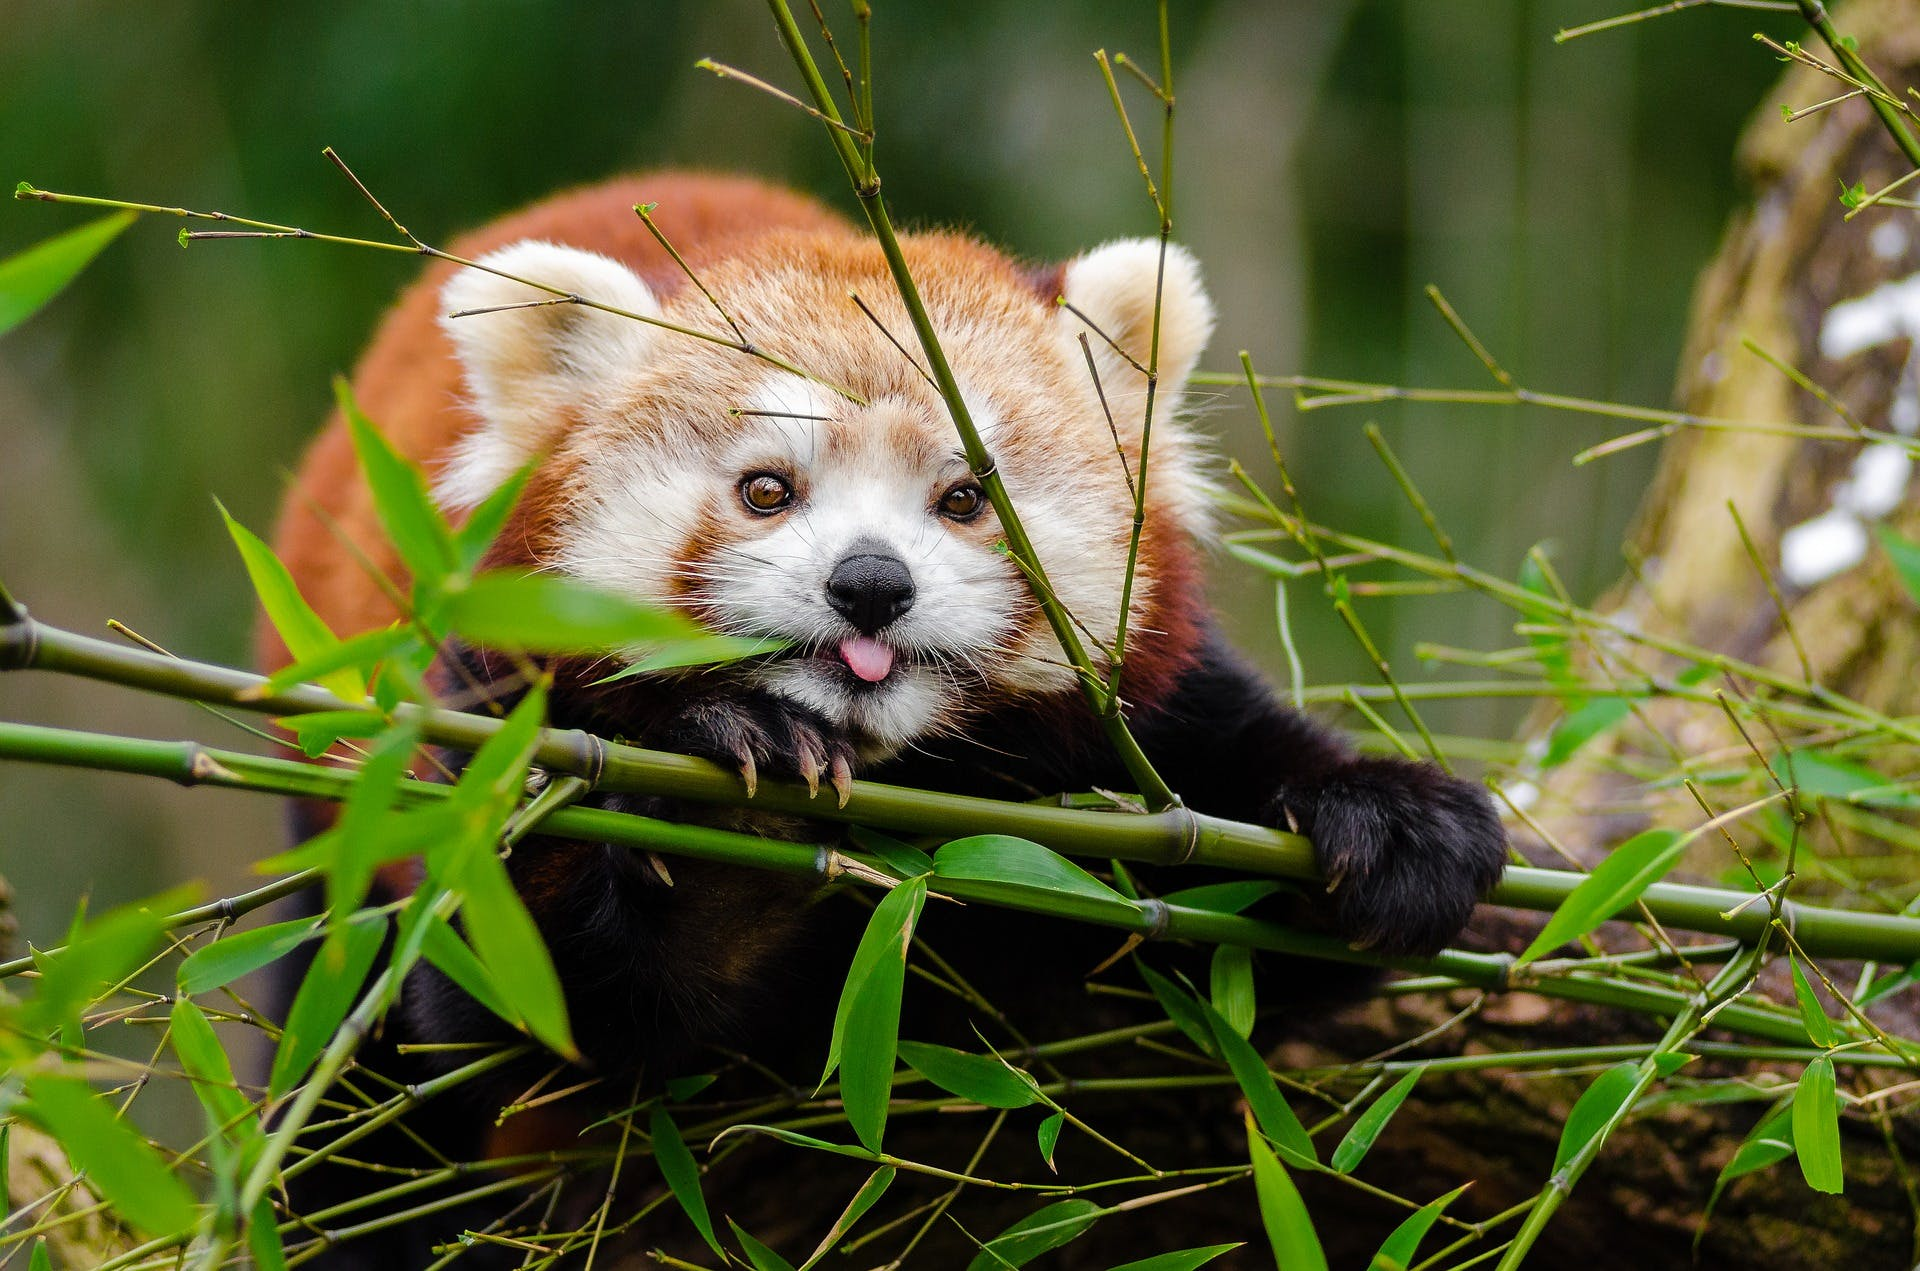 A picture of a red panda